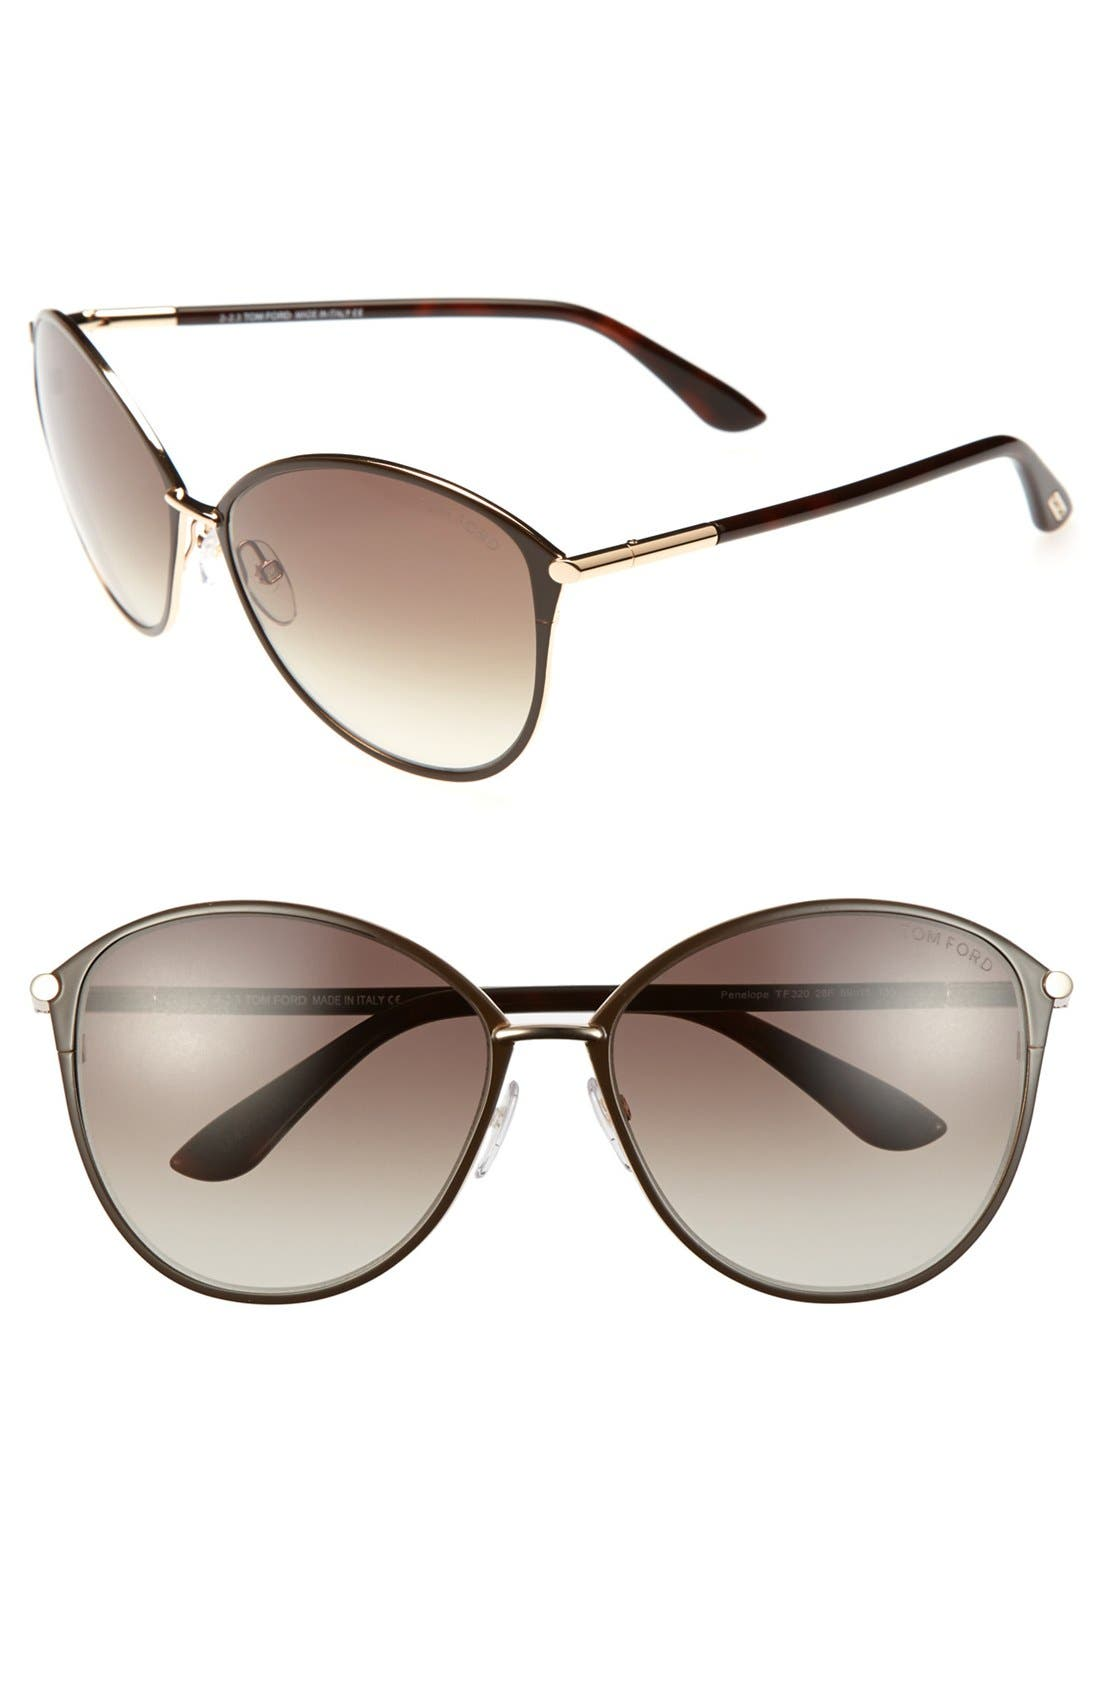 Penelope 59mm Gradient Cat Eye Sunglasses,                             Main thumbnail 1, color,                             Shiny Rose Gold/ Dark Brown